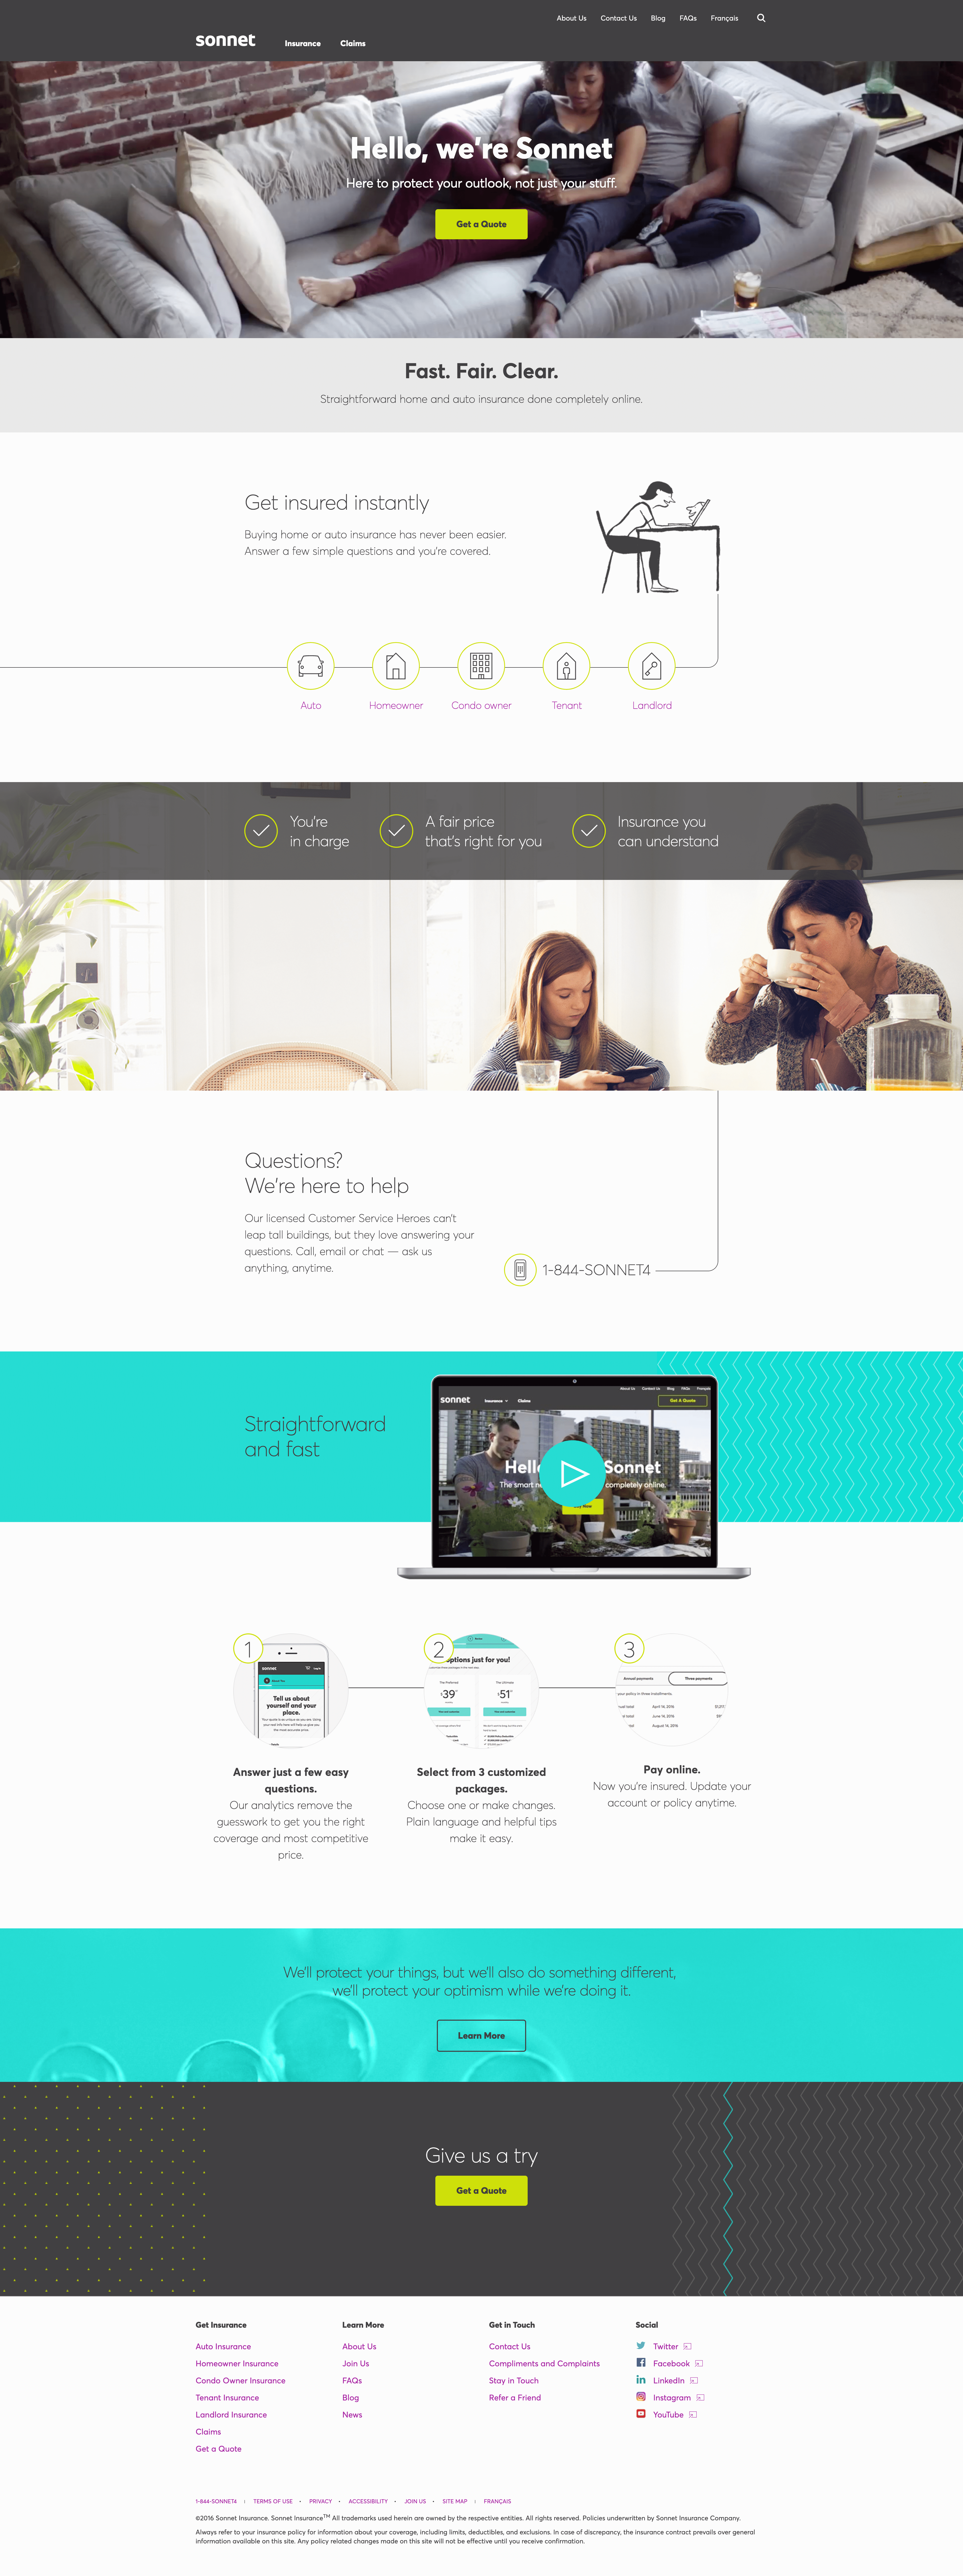 Sonnet homepage in March 2017